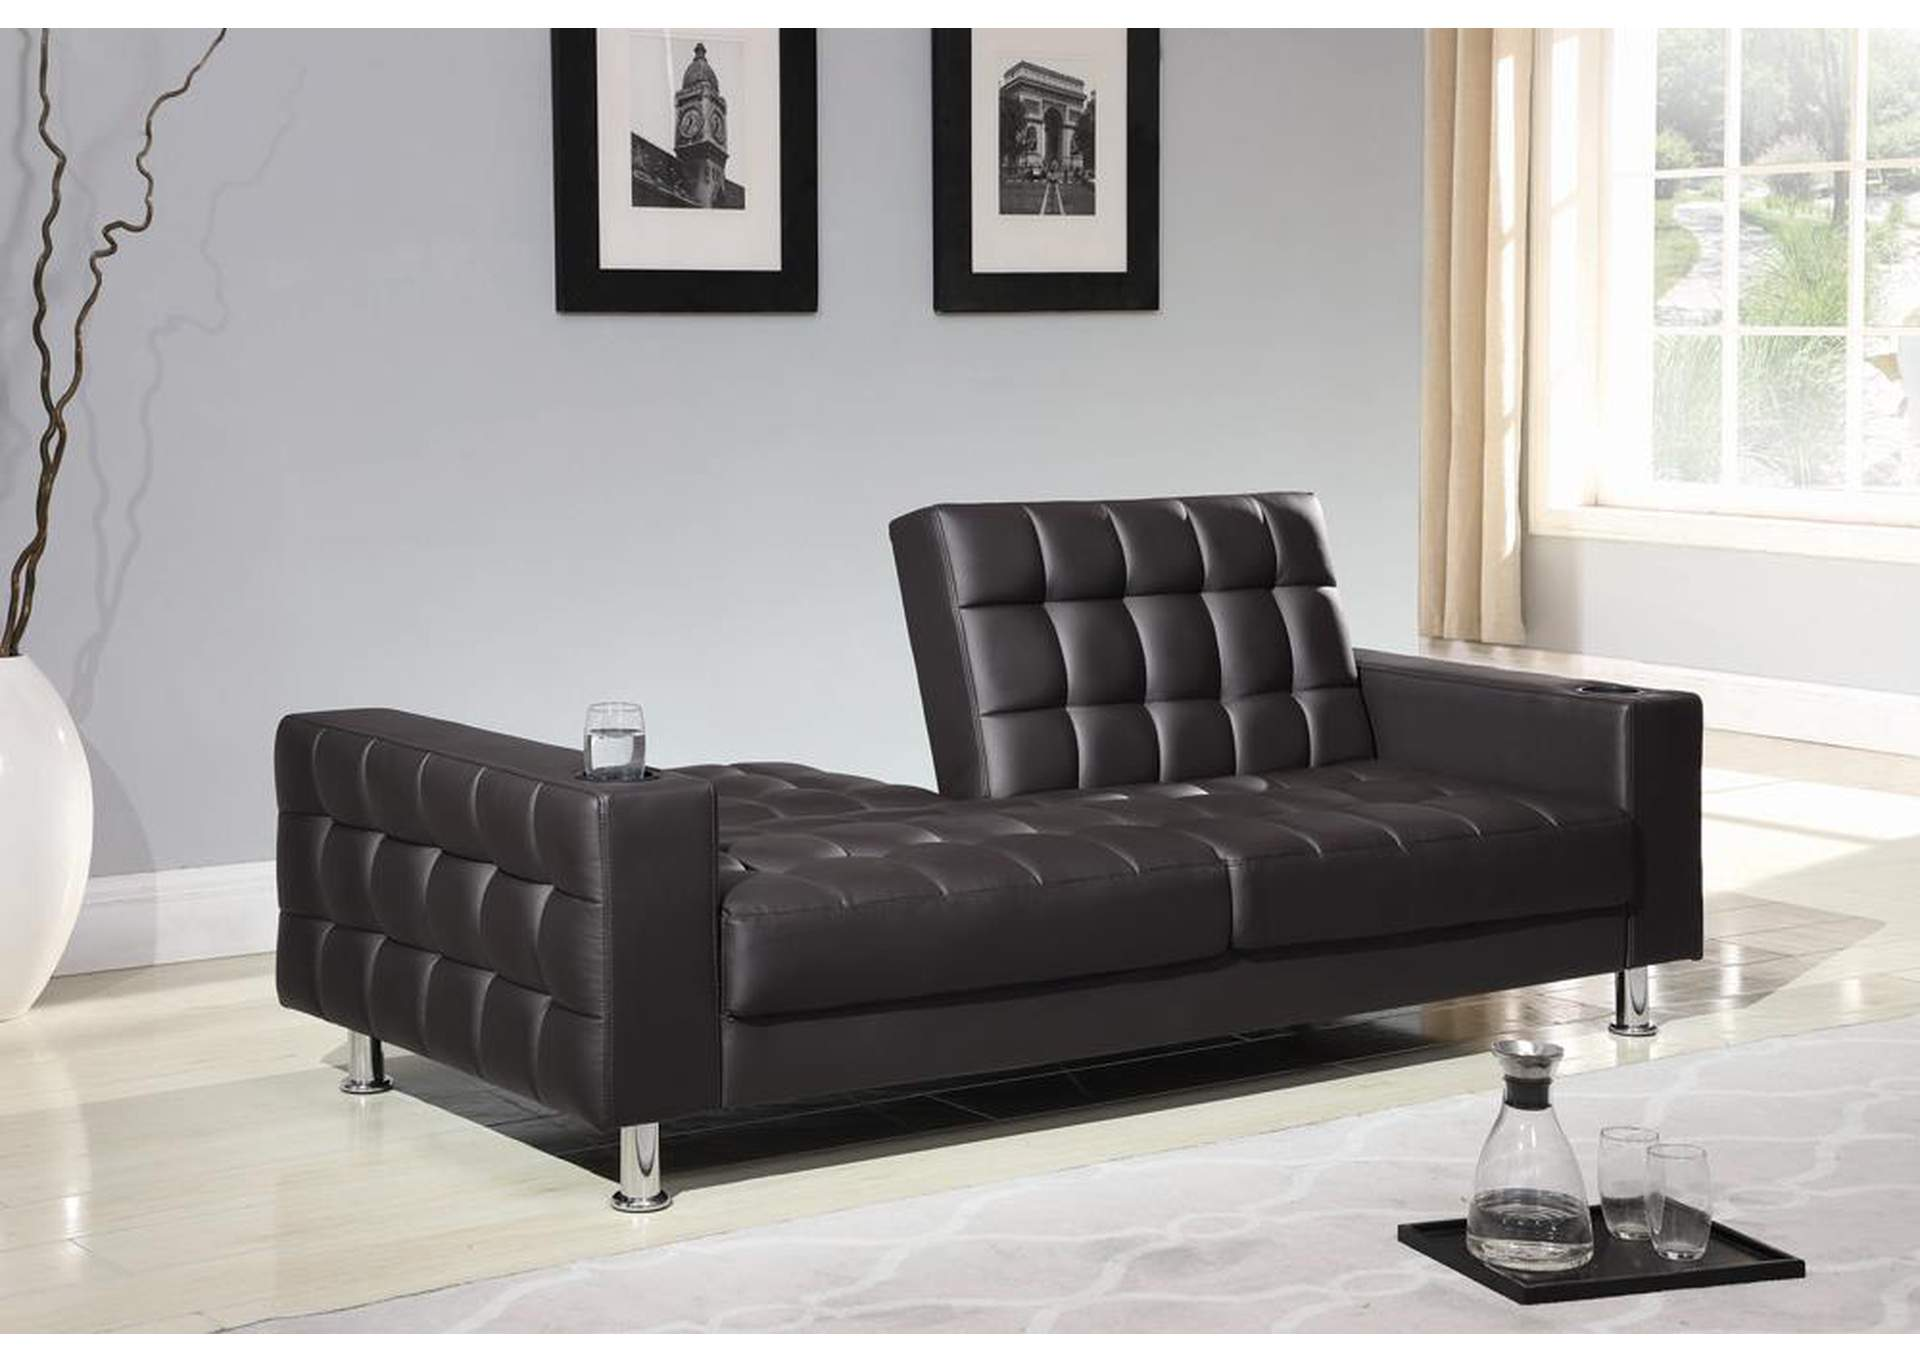 Muncie Furniture Dark Brown Sofa Bed